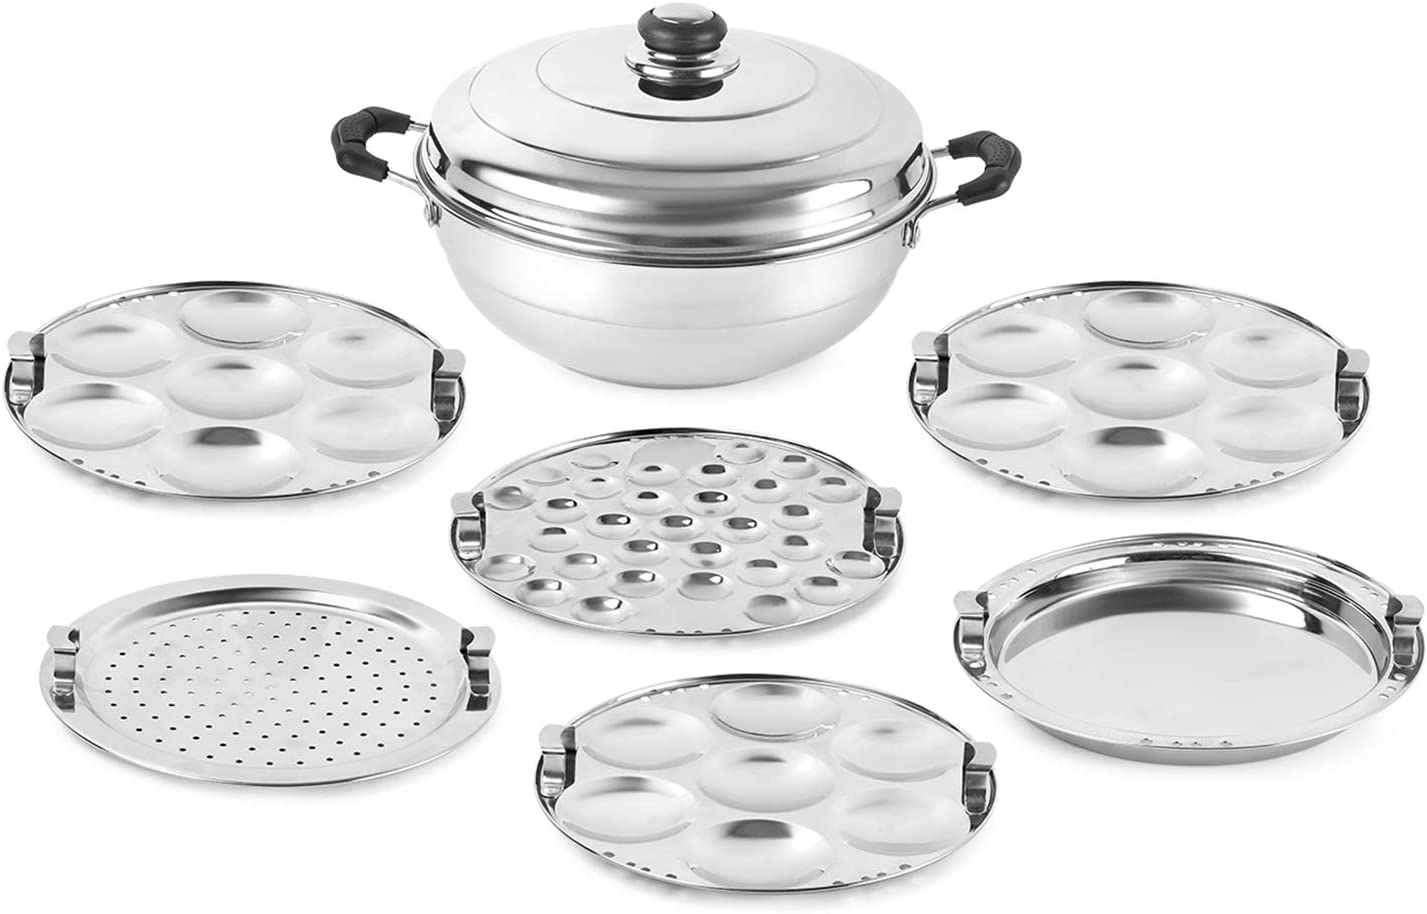 Cello Stainless Steel Multi Purpose Steamer/Cooker with Induction Base and 6 Plates, Set of 8